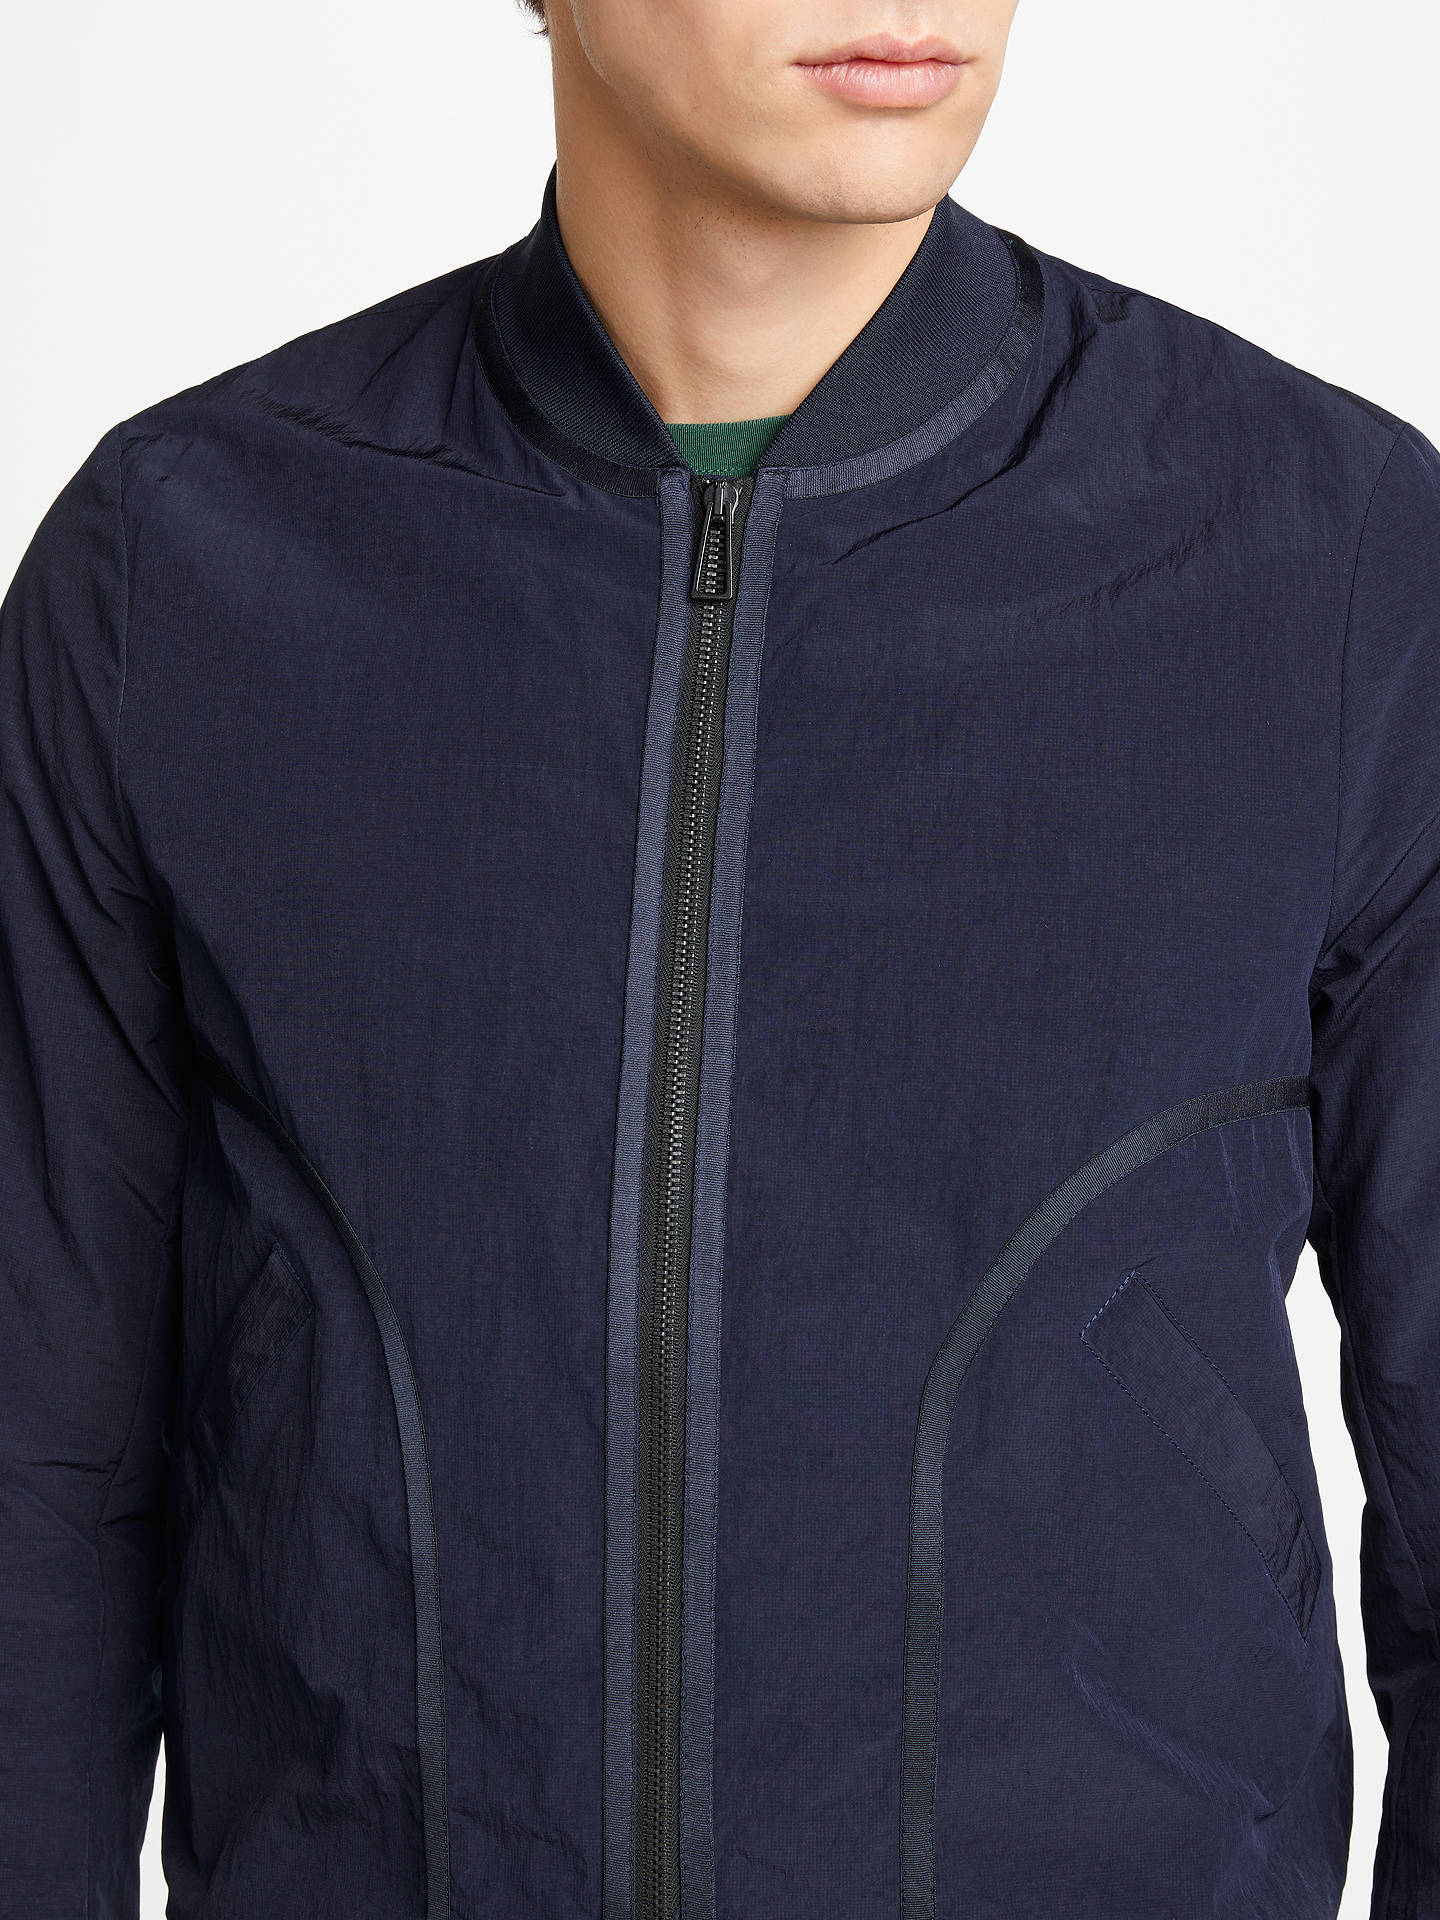 05183f90d PS Paul Smith Ripstop Bomber Jacket, Navy at John Lewis & Partners